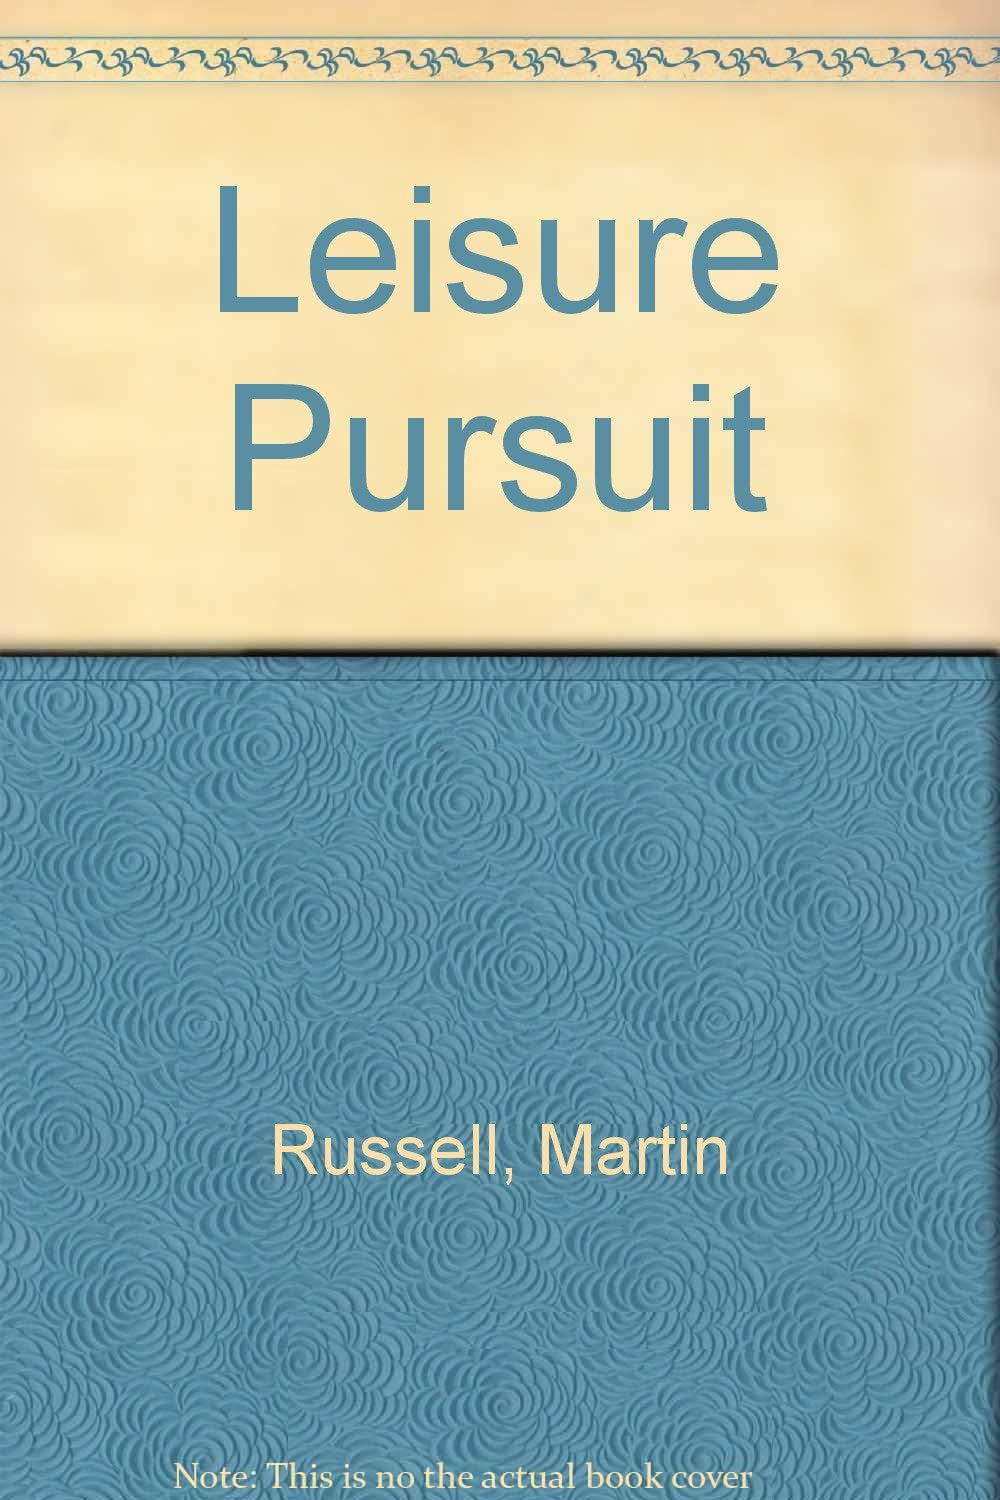 Leisure Pursuits